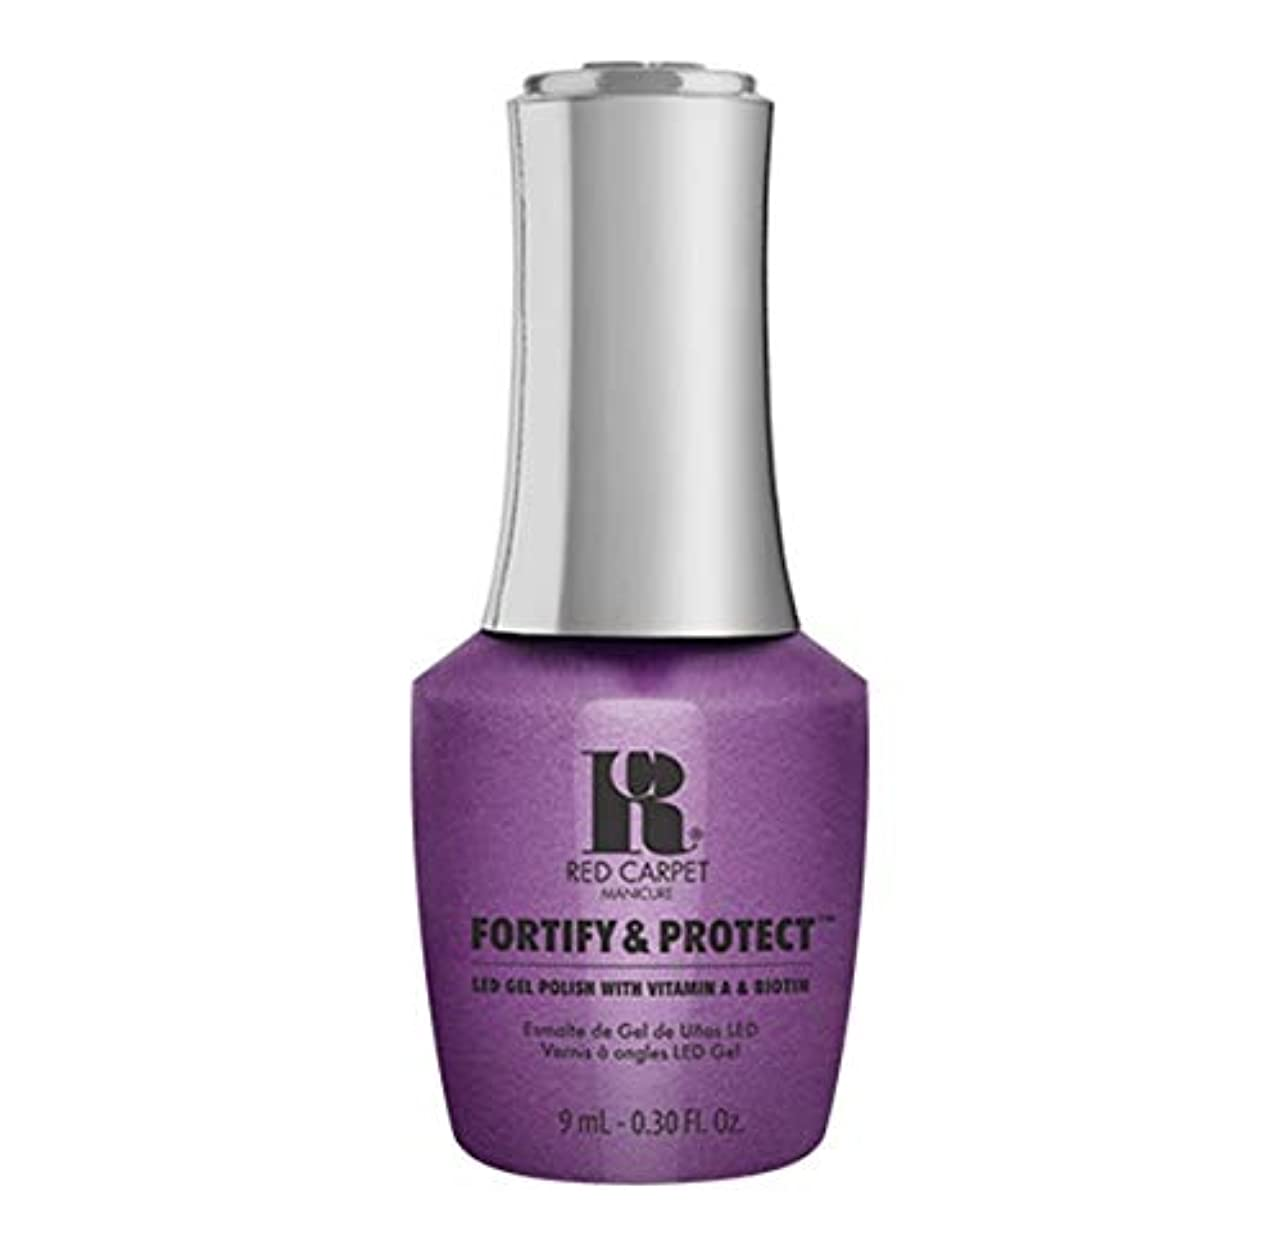 博物館コンチネンタル素晴らしさRed Carpet Manicure - Fortify & Protect - The Magic Hour - 9ml / 0.30oz